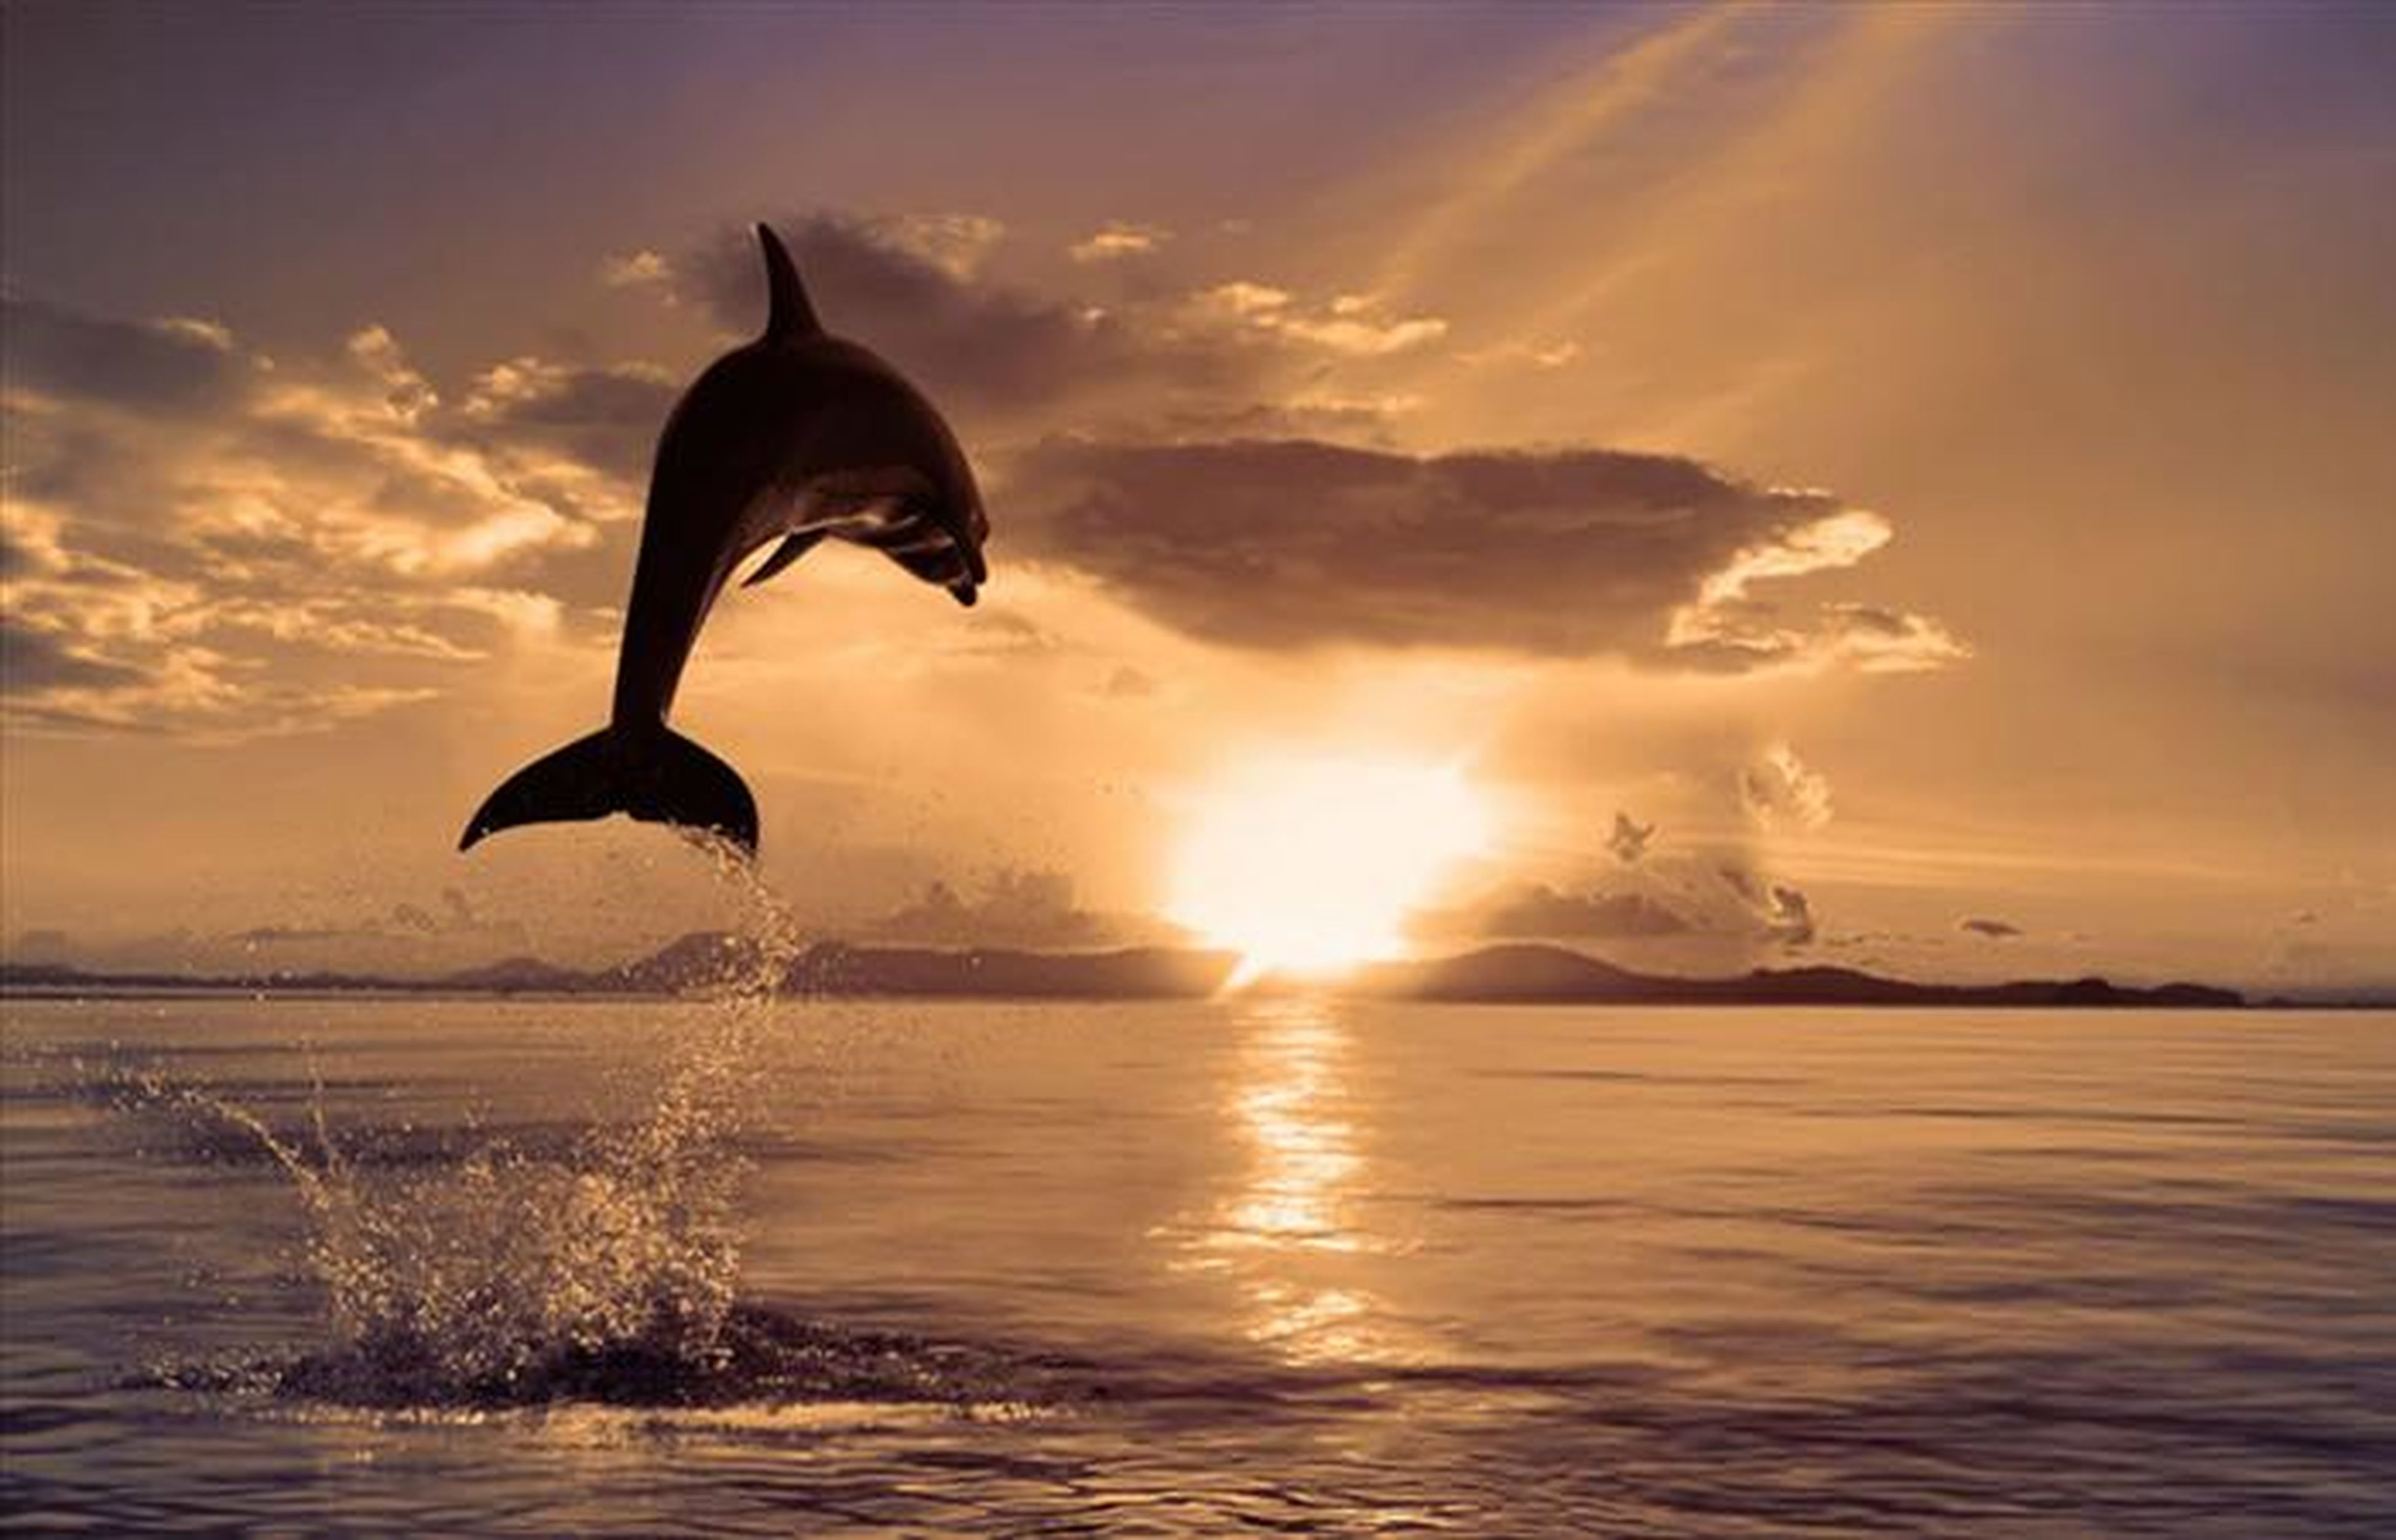 sunset, water, animal themes, bird, sea, silhouette, sun, sky, beauty in nature, one animal, orange color, animals in the wild, reflection, scenics, wildlife, tranquil scene, nature, tranquility, waterfront, idyllic